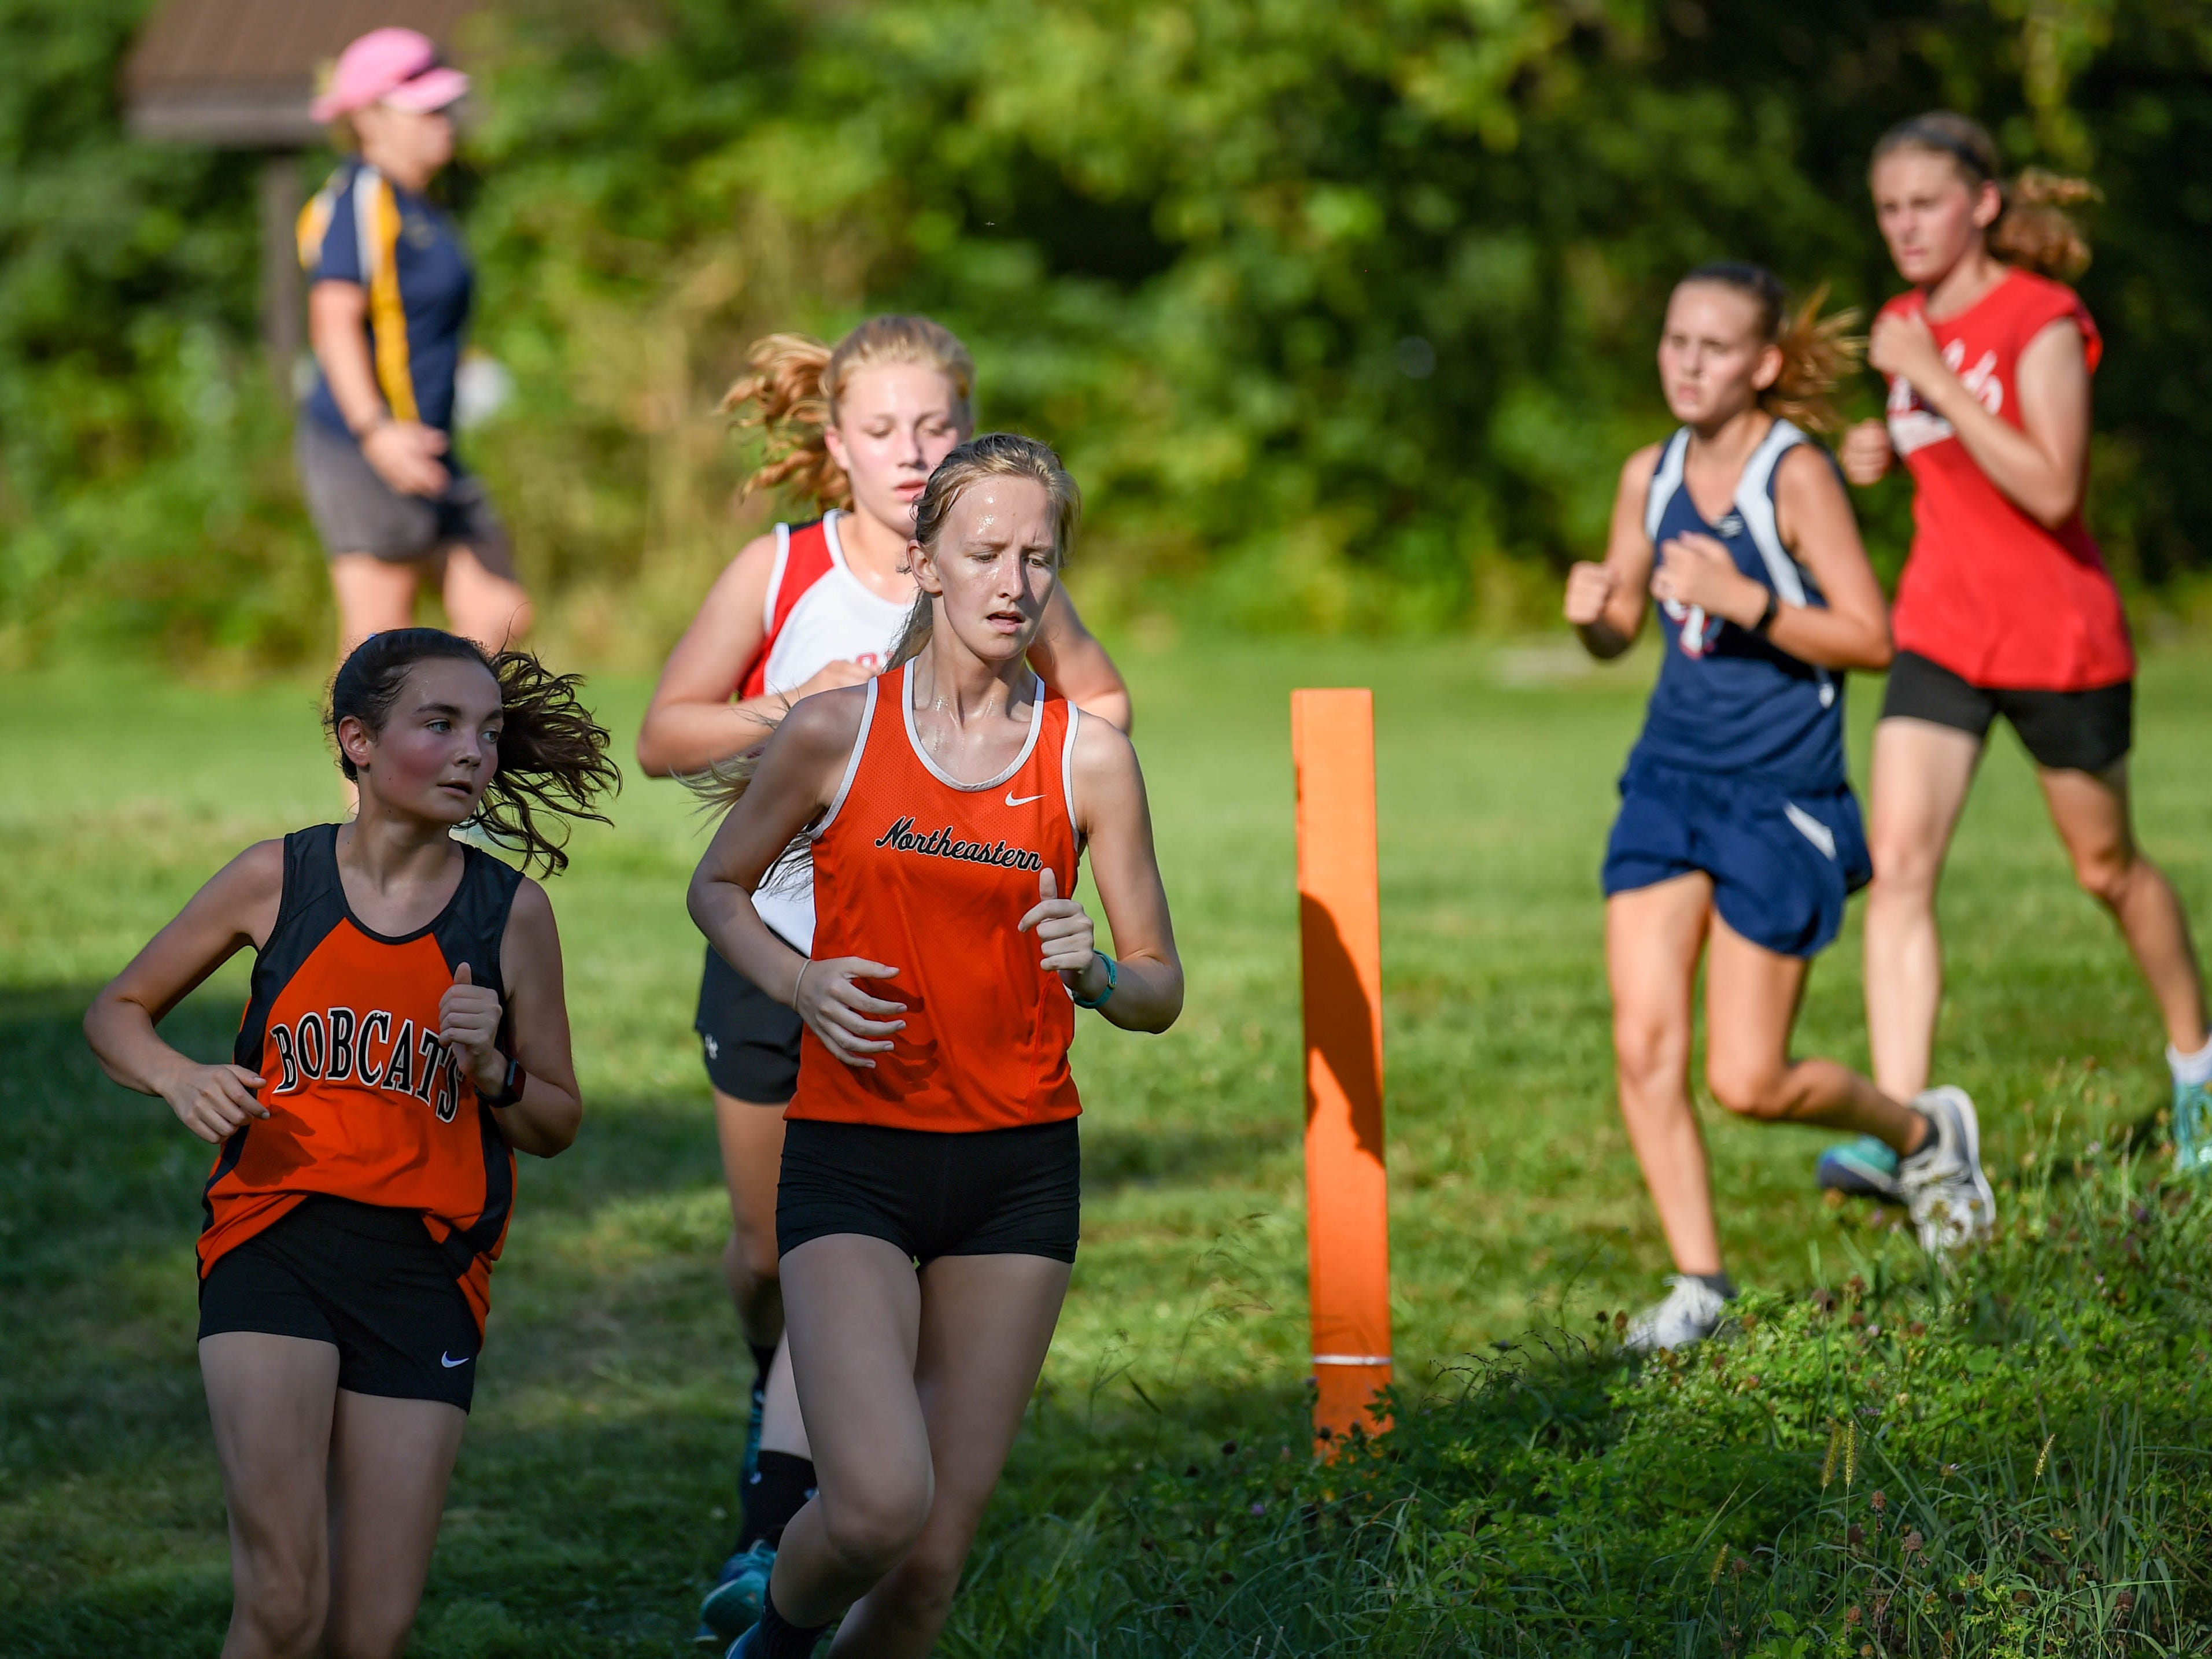 Northeastern teammates run side by side during the Cross Country scrimmage at John Rudy County Park on August 30, 2018.